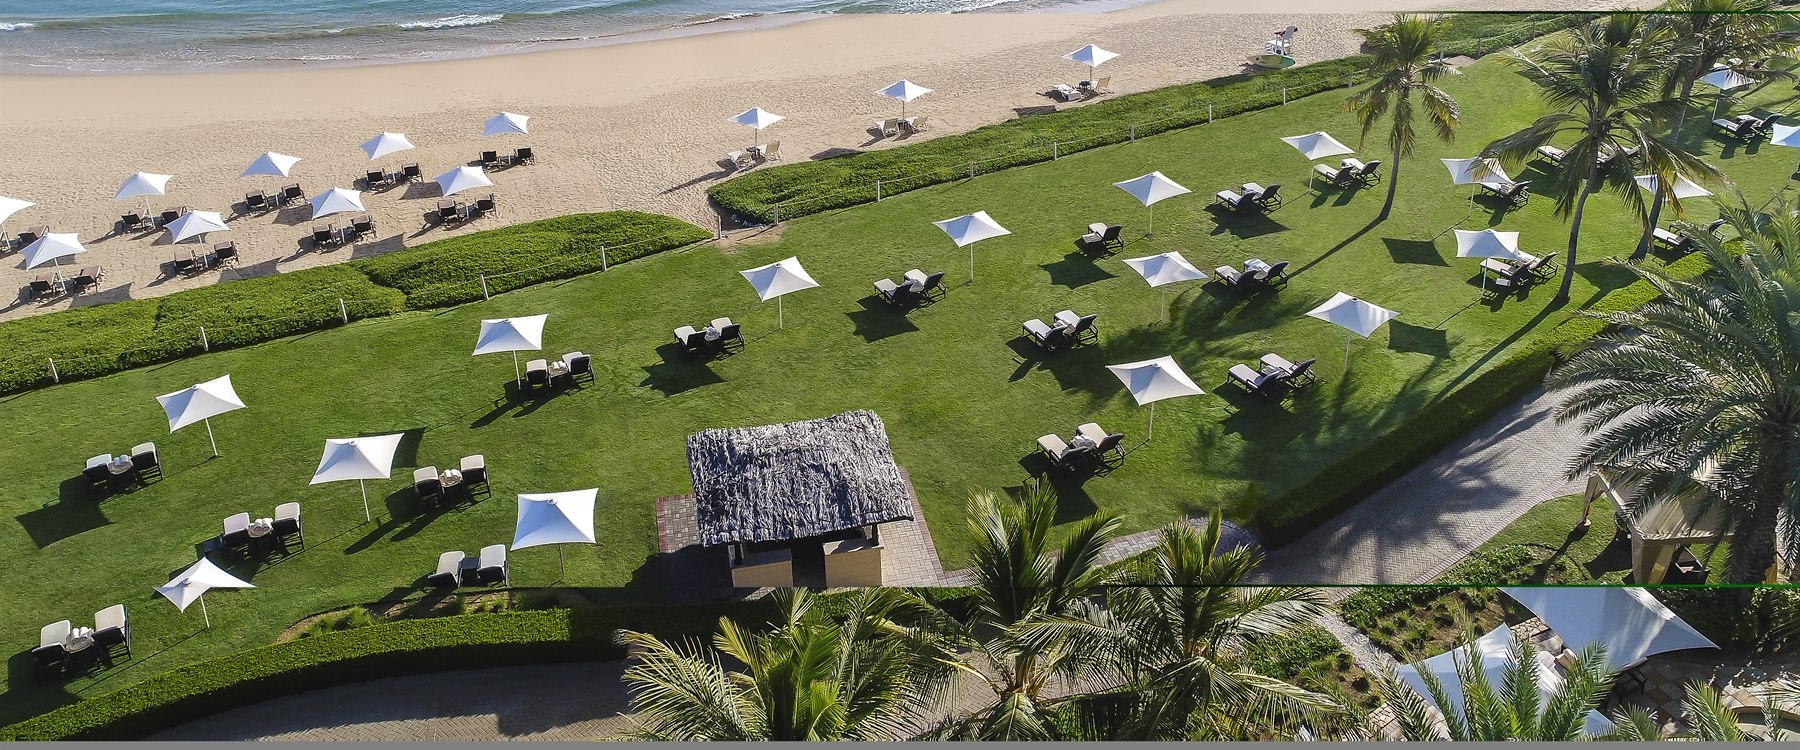 Aerial view of Shangri-La's Barr Al Jissah Resort & Spa, Al Bandar